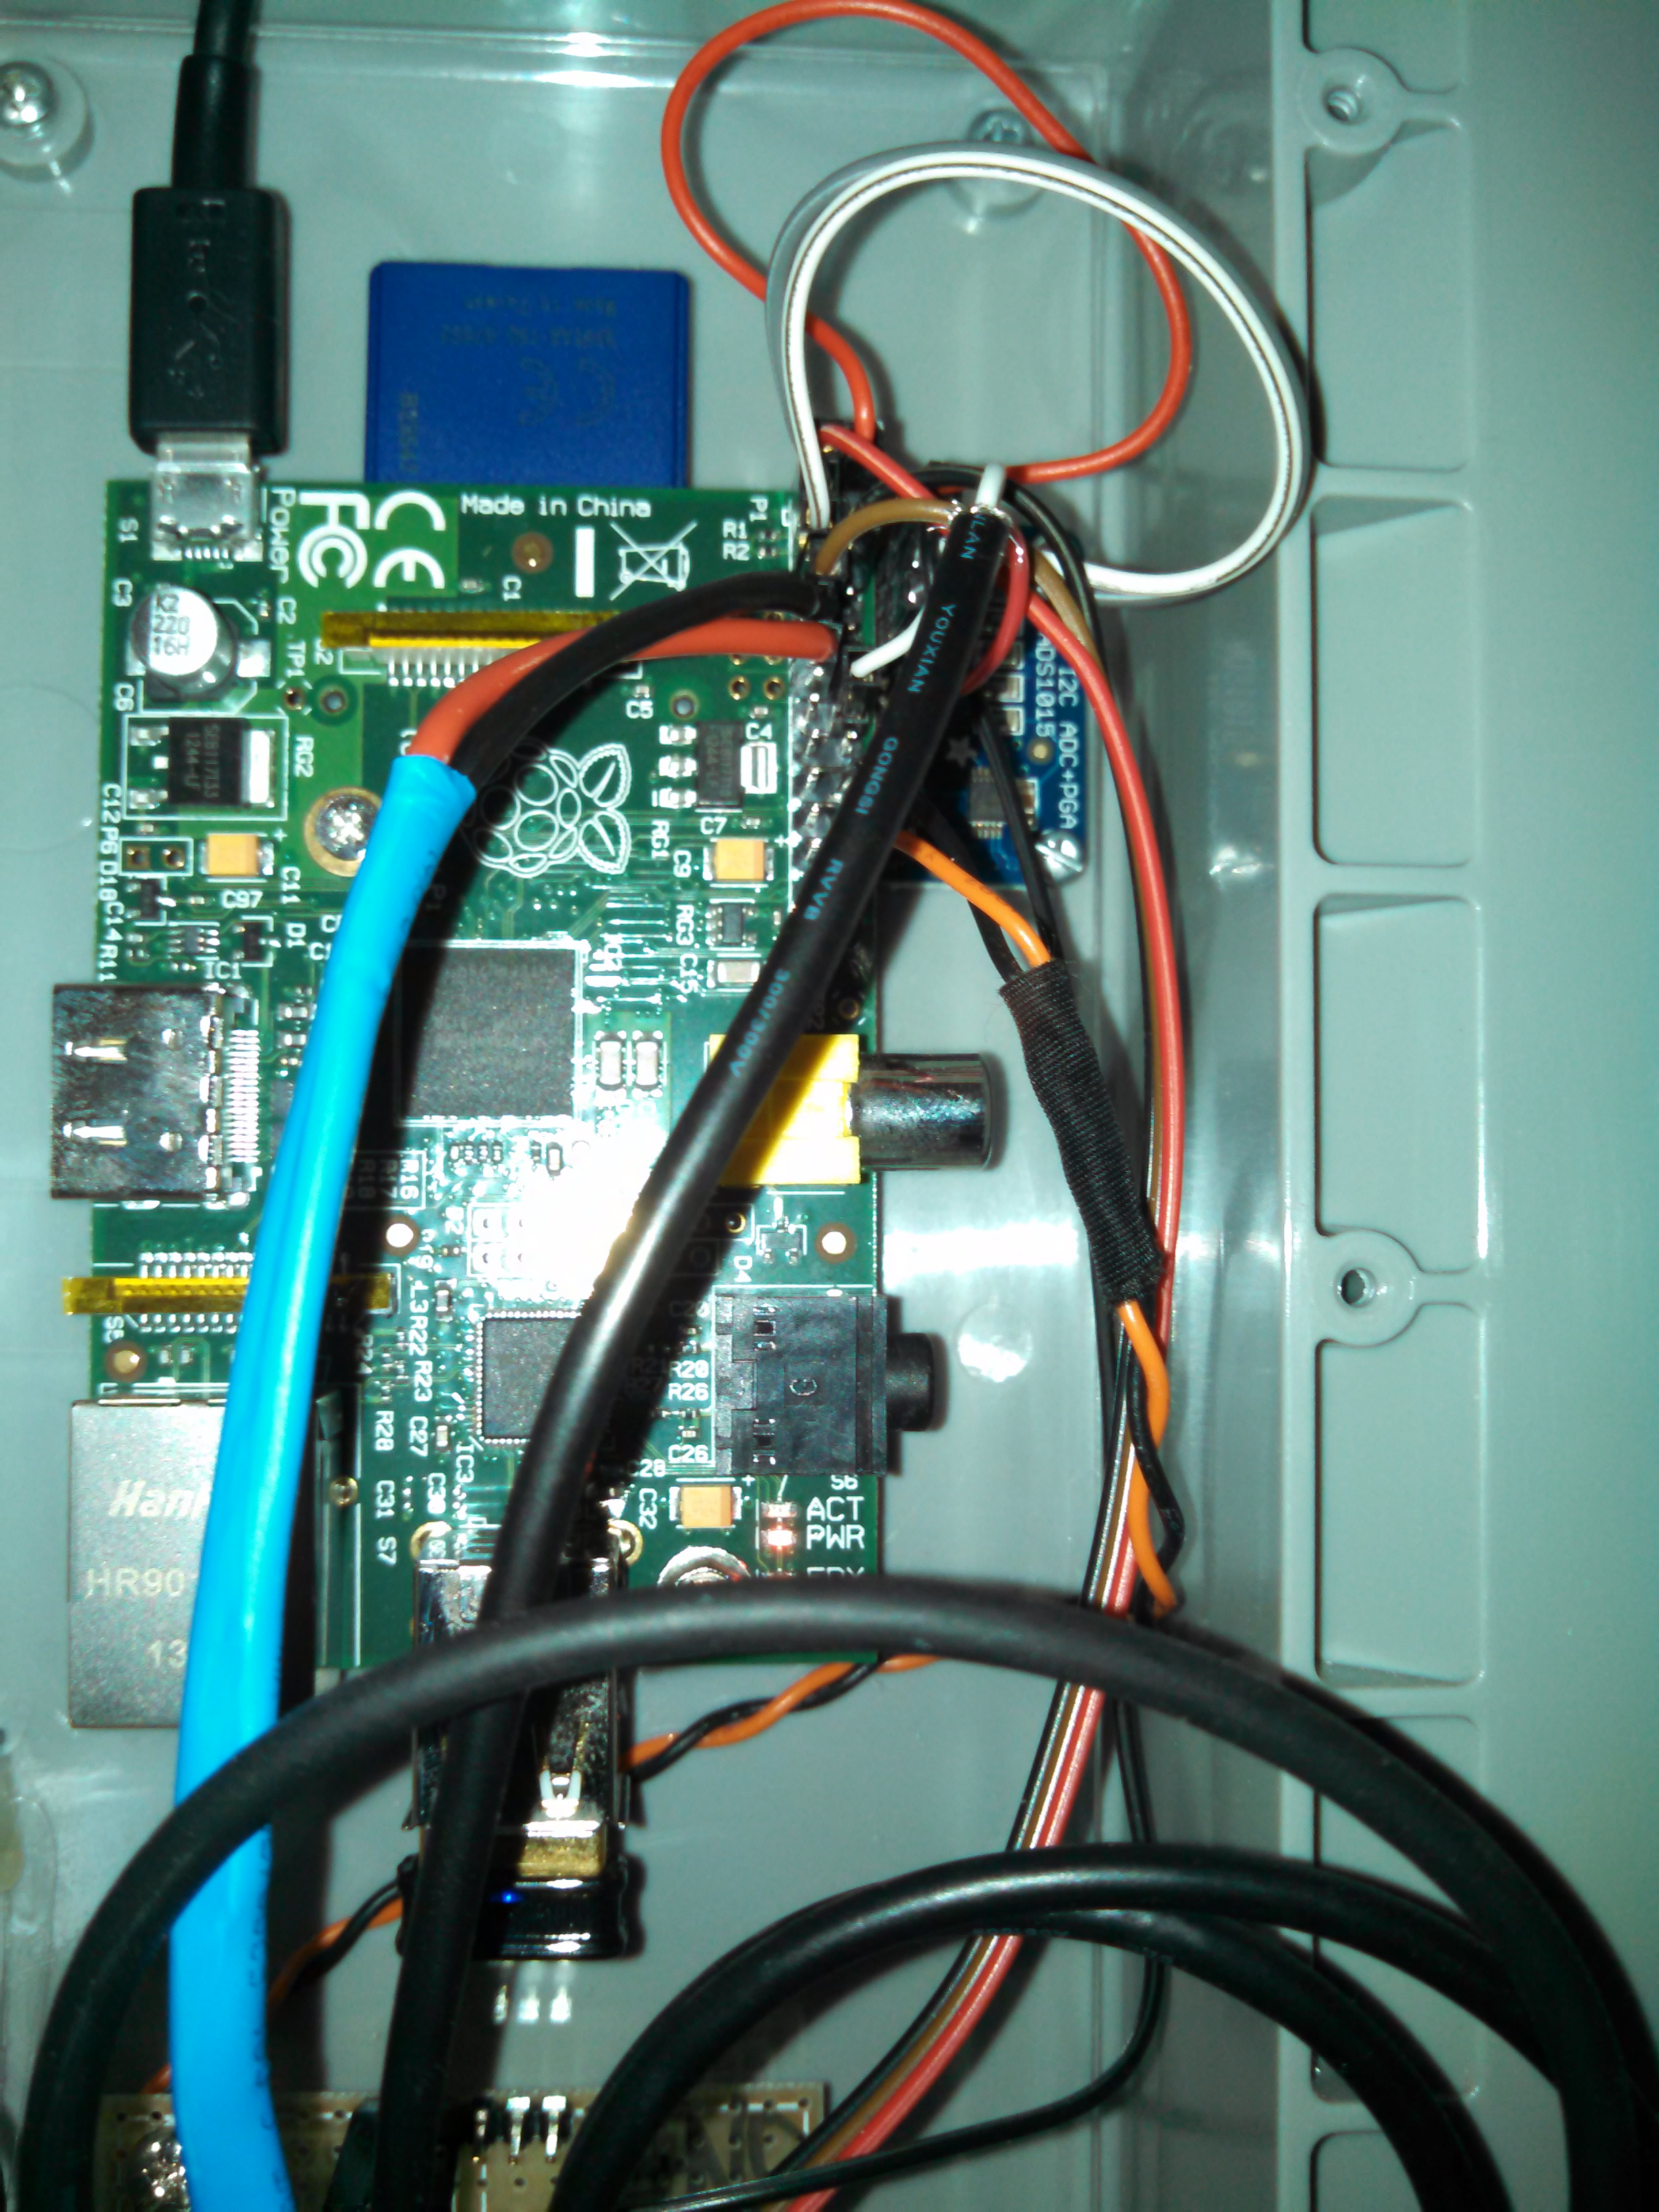 Tinker Labz - Water Heater Control Box View 4